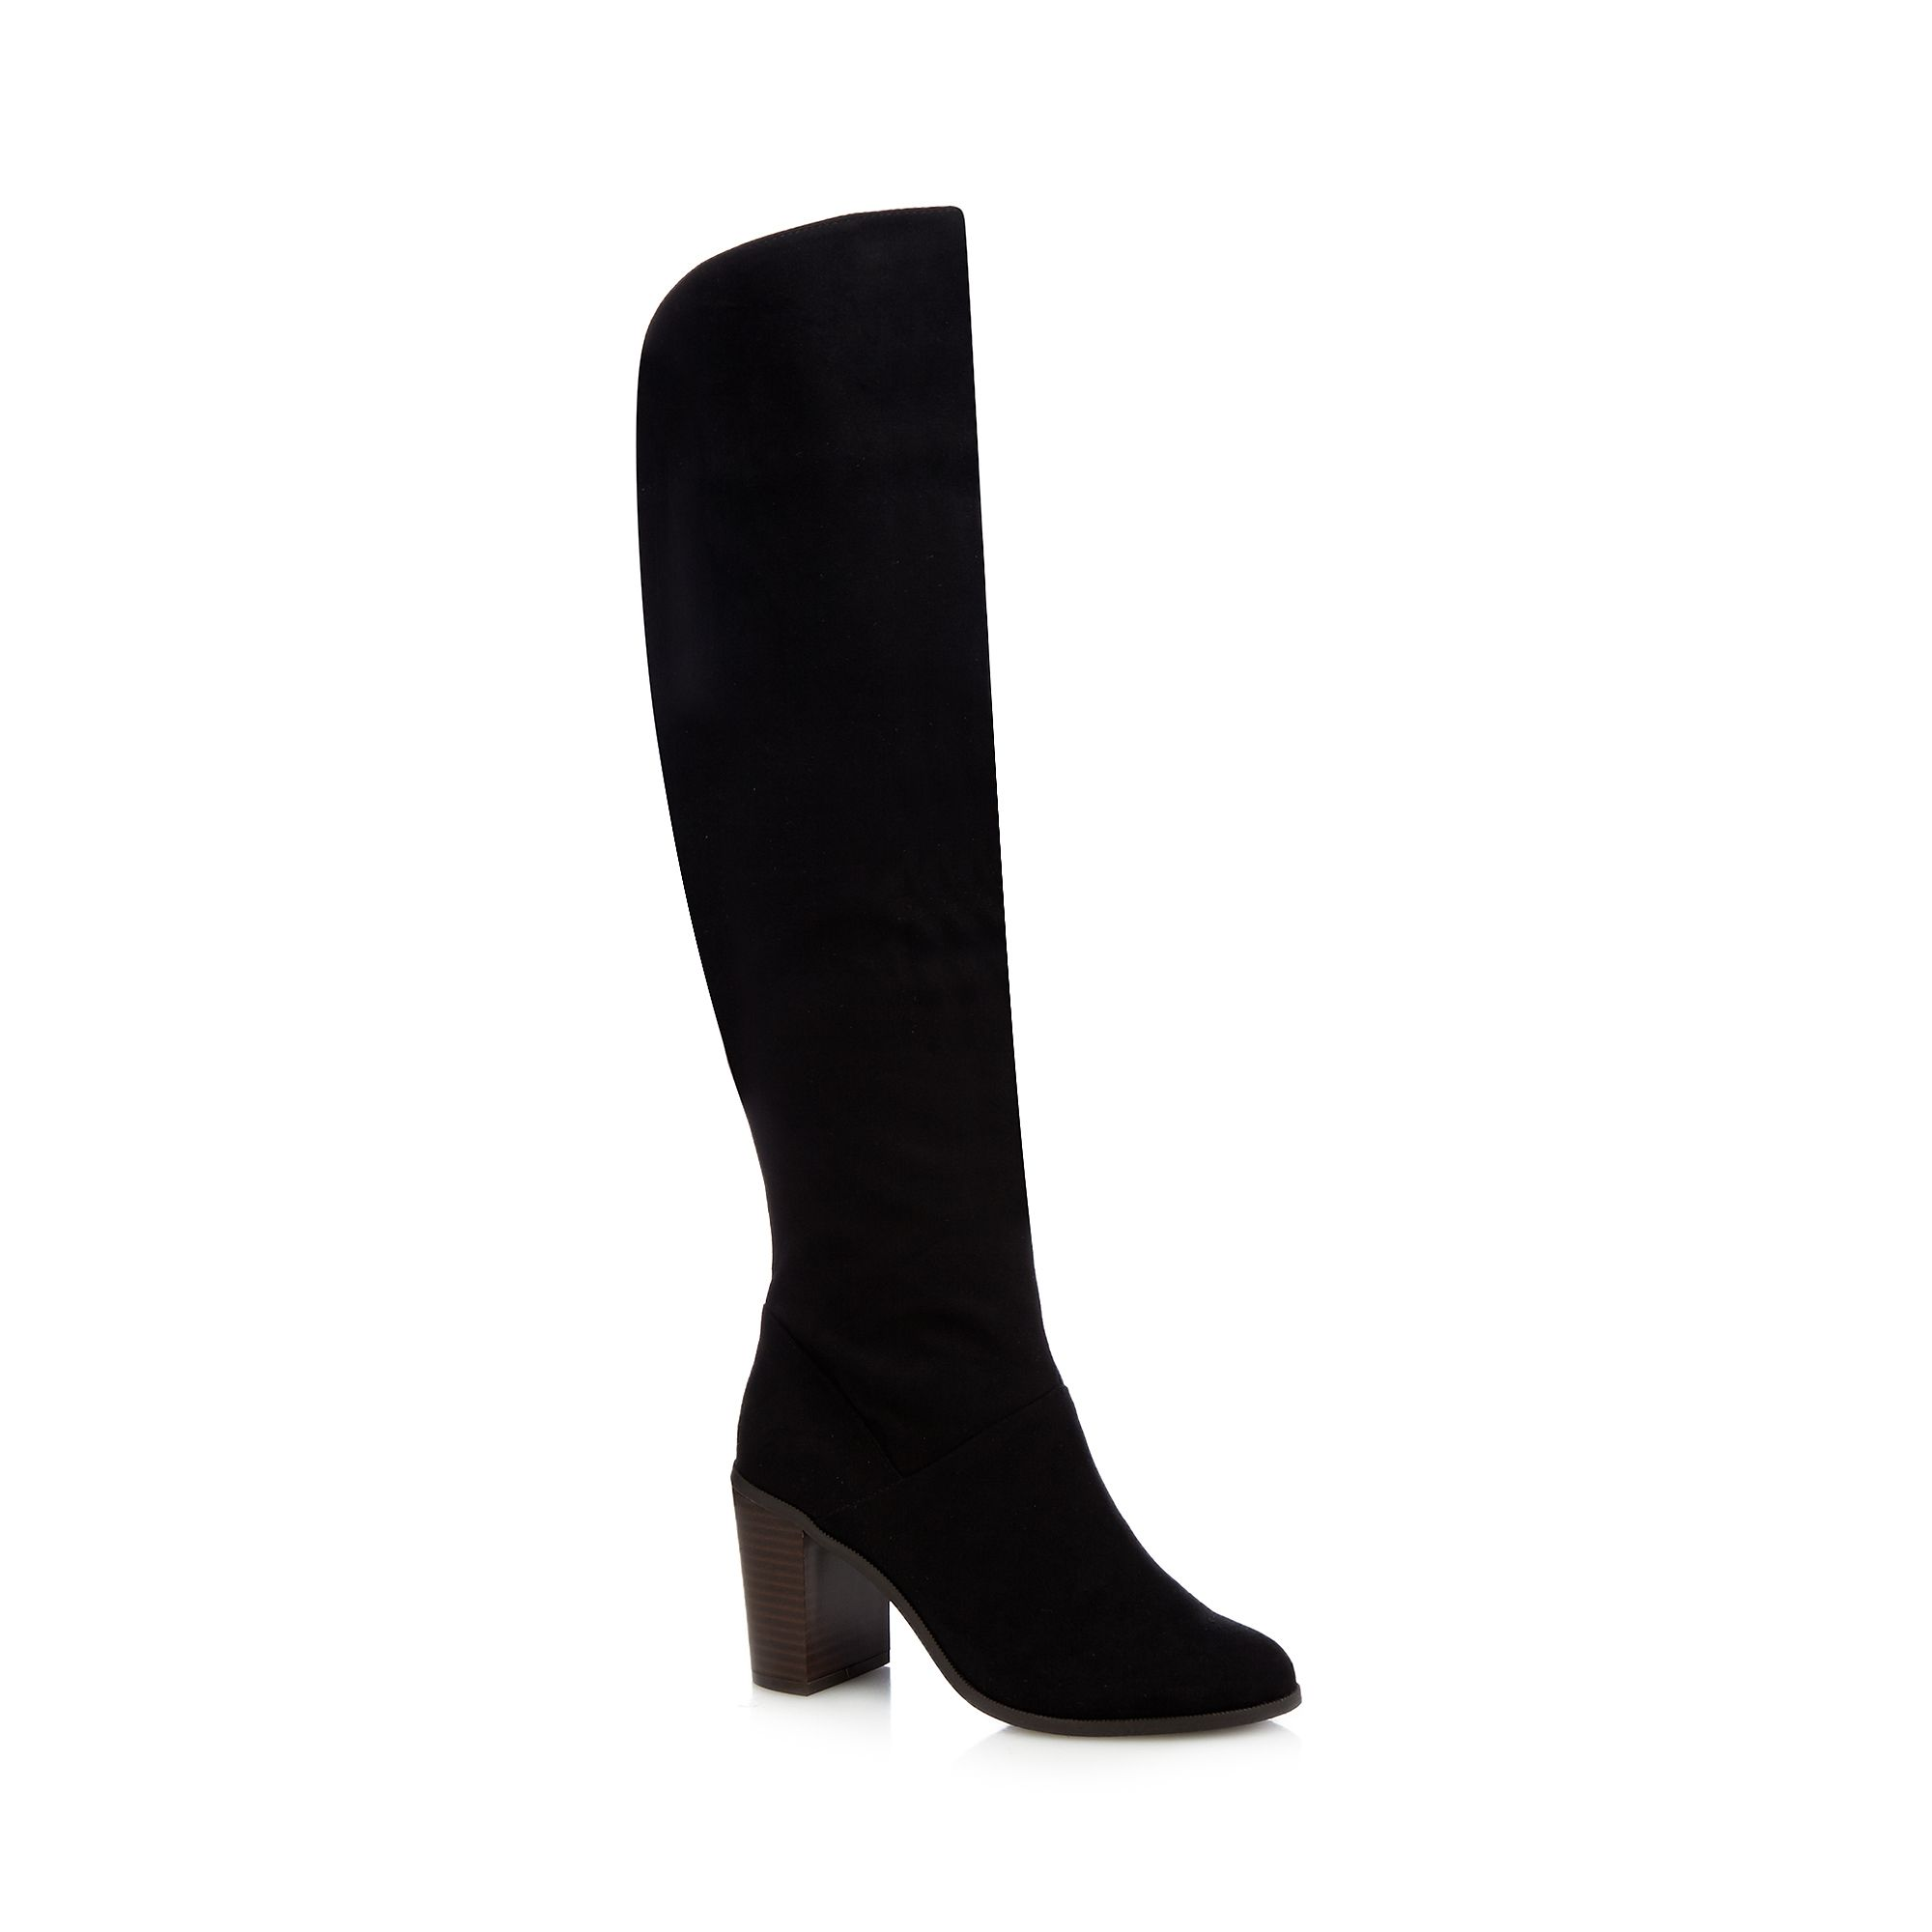 herring womens black knee high heeled boots from